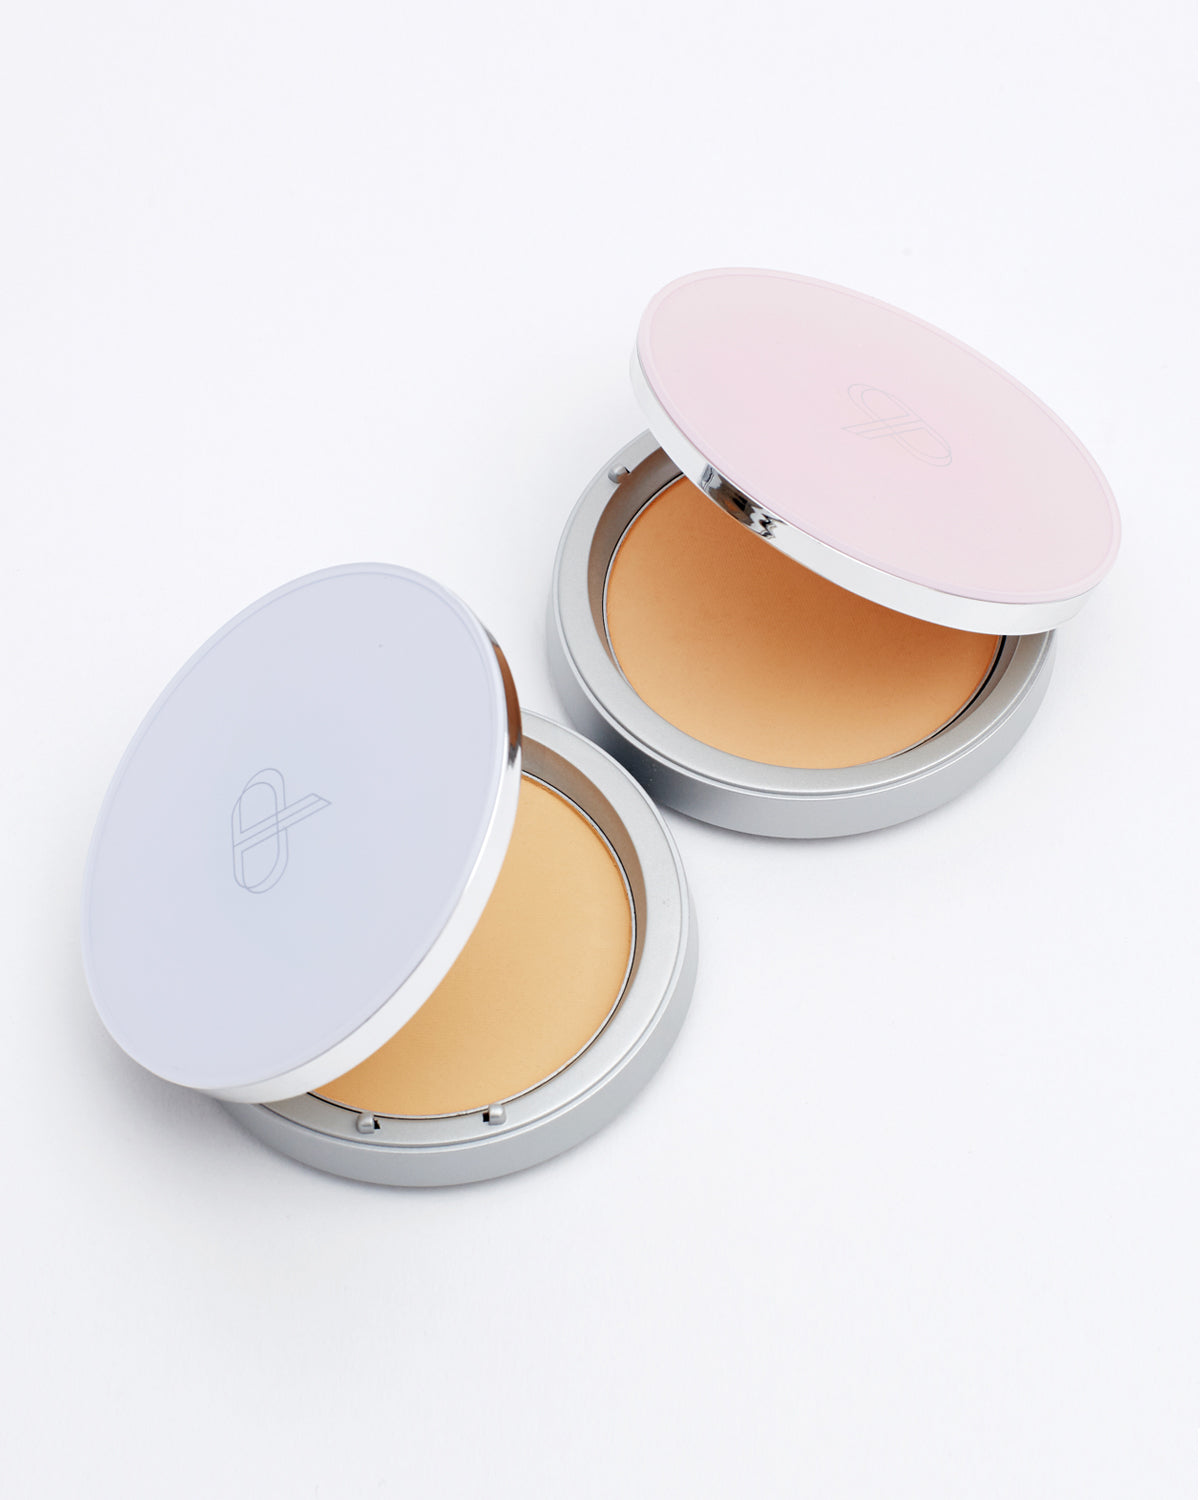 Flawless and Matte All Day Long  This lightweight pressed powder pact helps cover imperfection, controls excessive sebum, and refines the appearance of the skin. Enriched with micro-fine pigments to leave your complexion looking flawless and matte all day long.